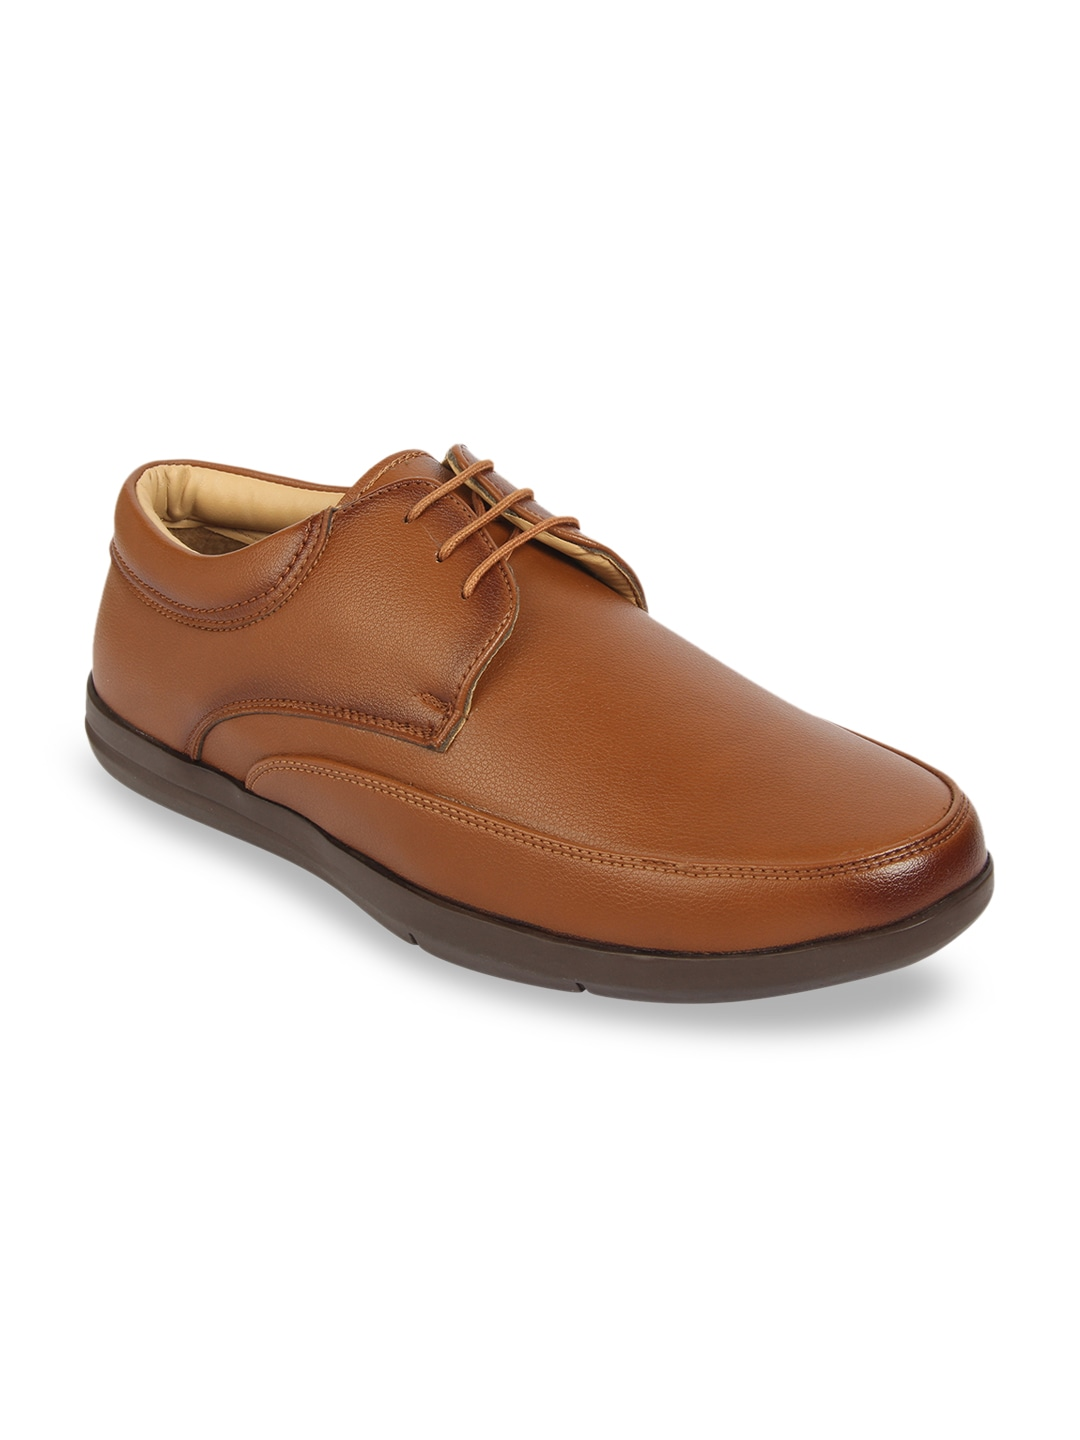 Tan Brown Textured Formal Derbys